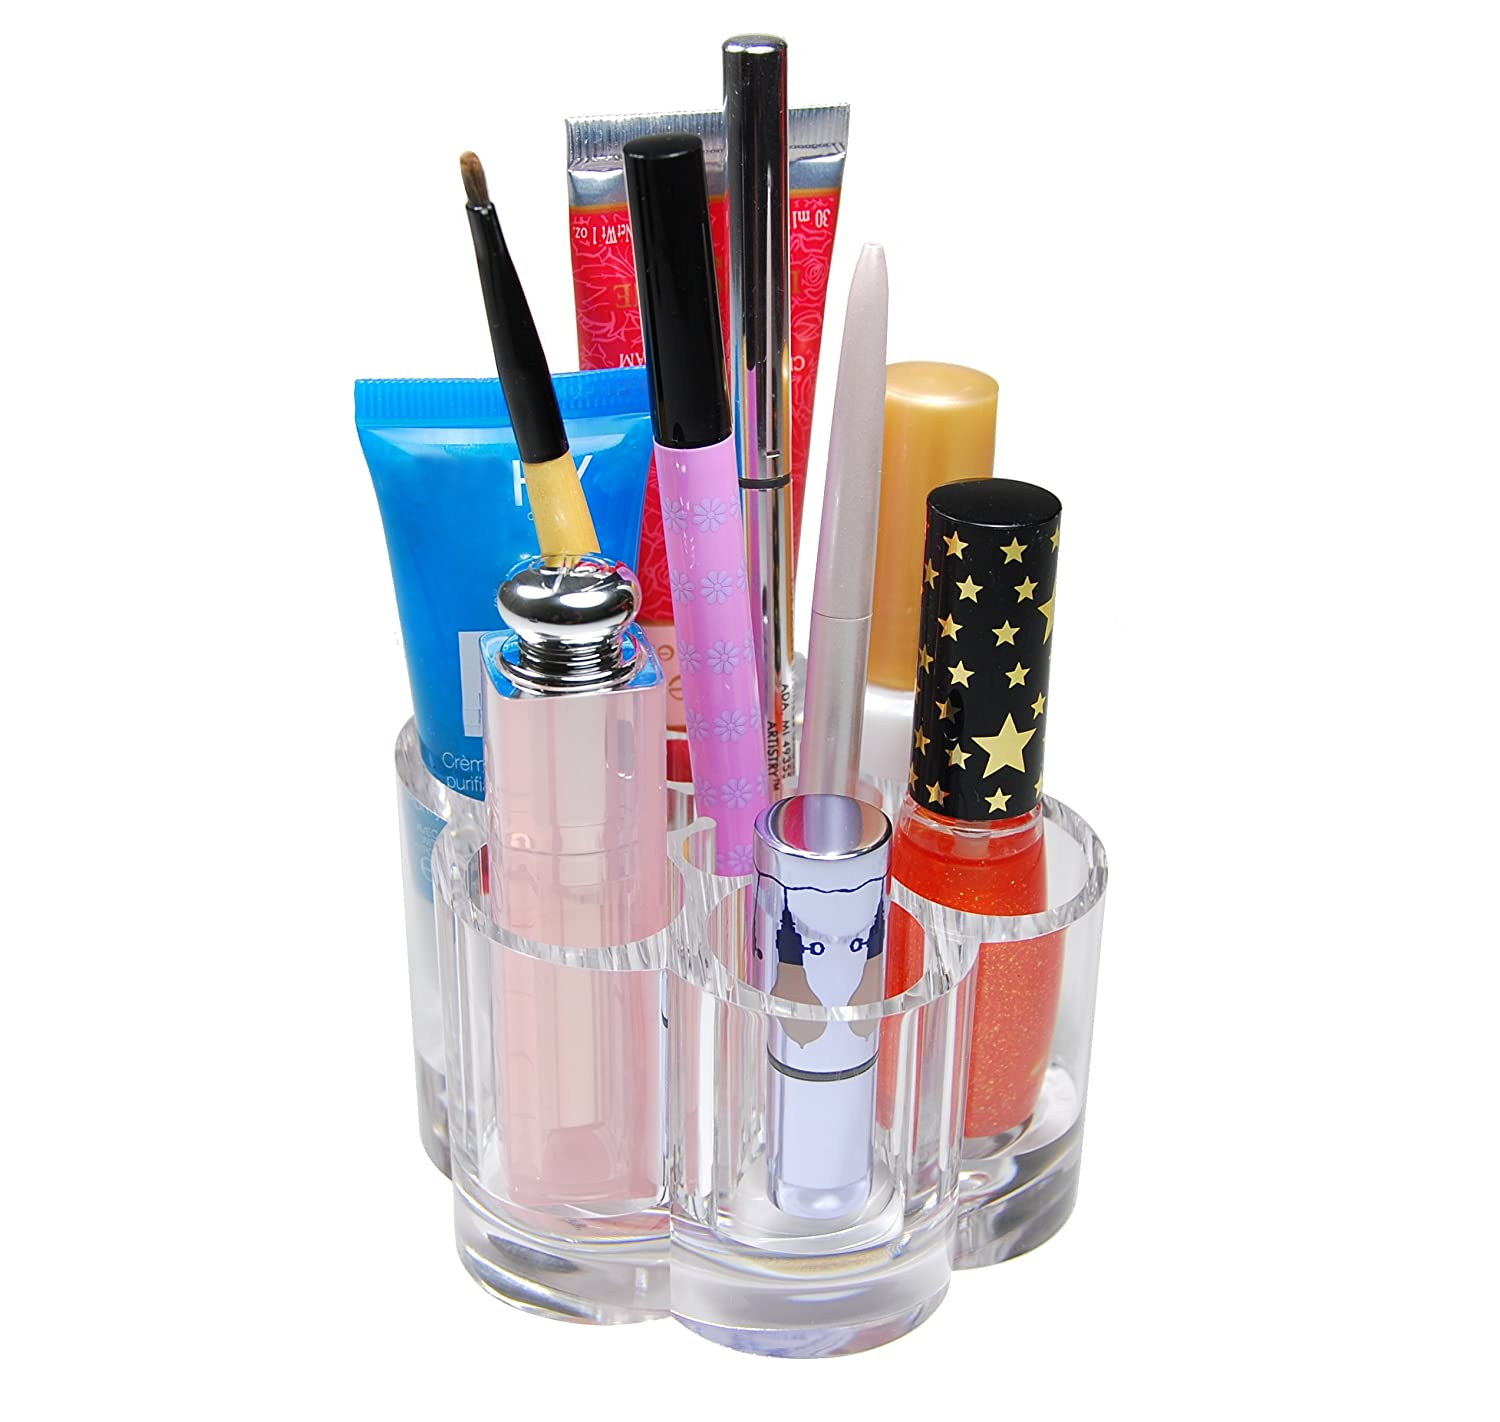 GQ Flower Style Clear Acrylic Cosmetic Organizer Makeup Brush Lipstick & Lip Gloss Holder with 12 Spaces Storage